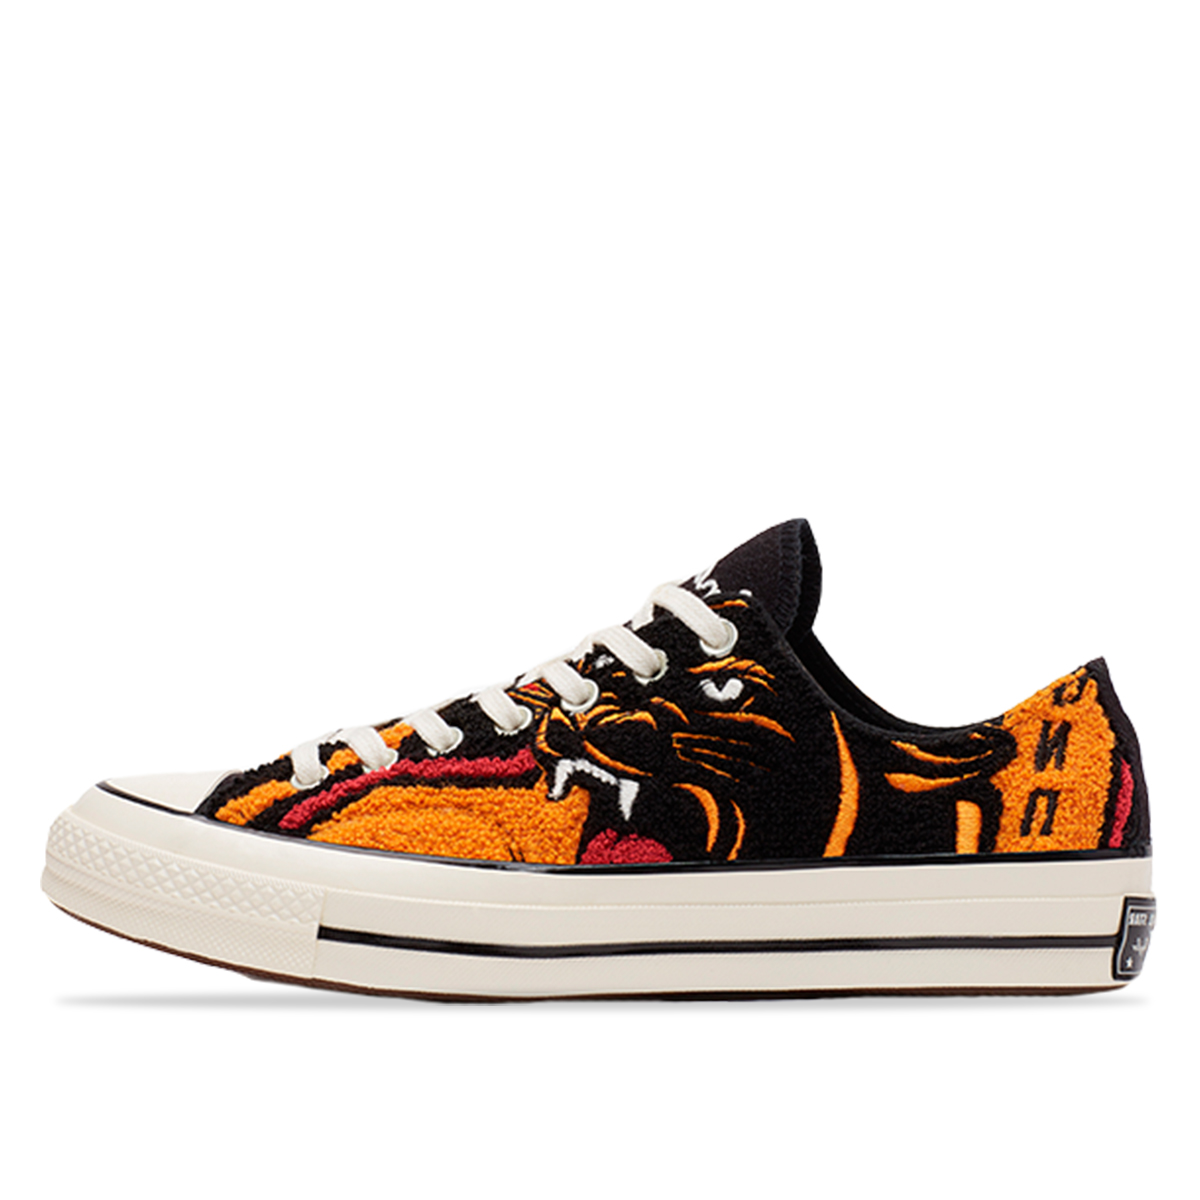 Converse x UNDFTD CT 70 Undefeated Ox Panther